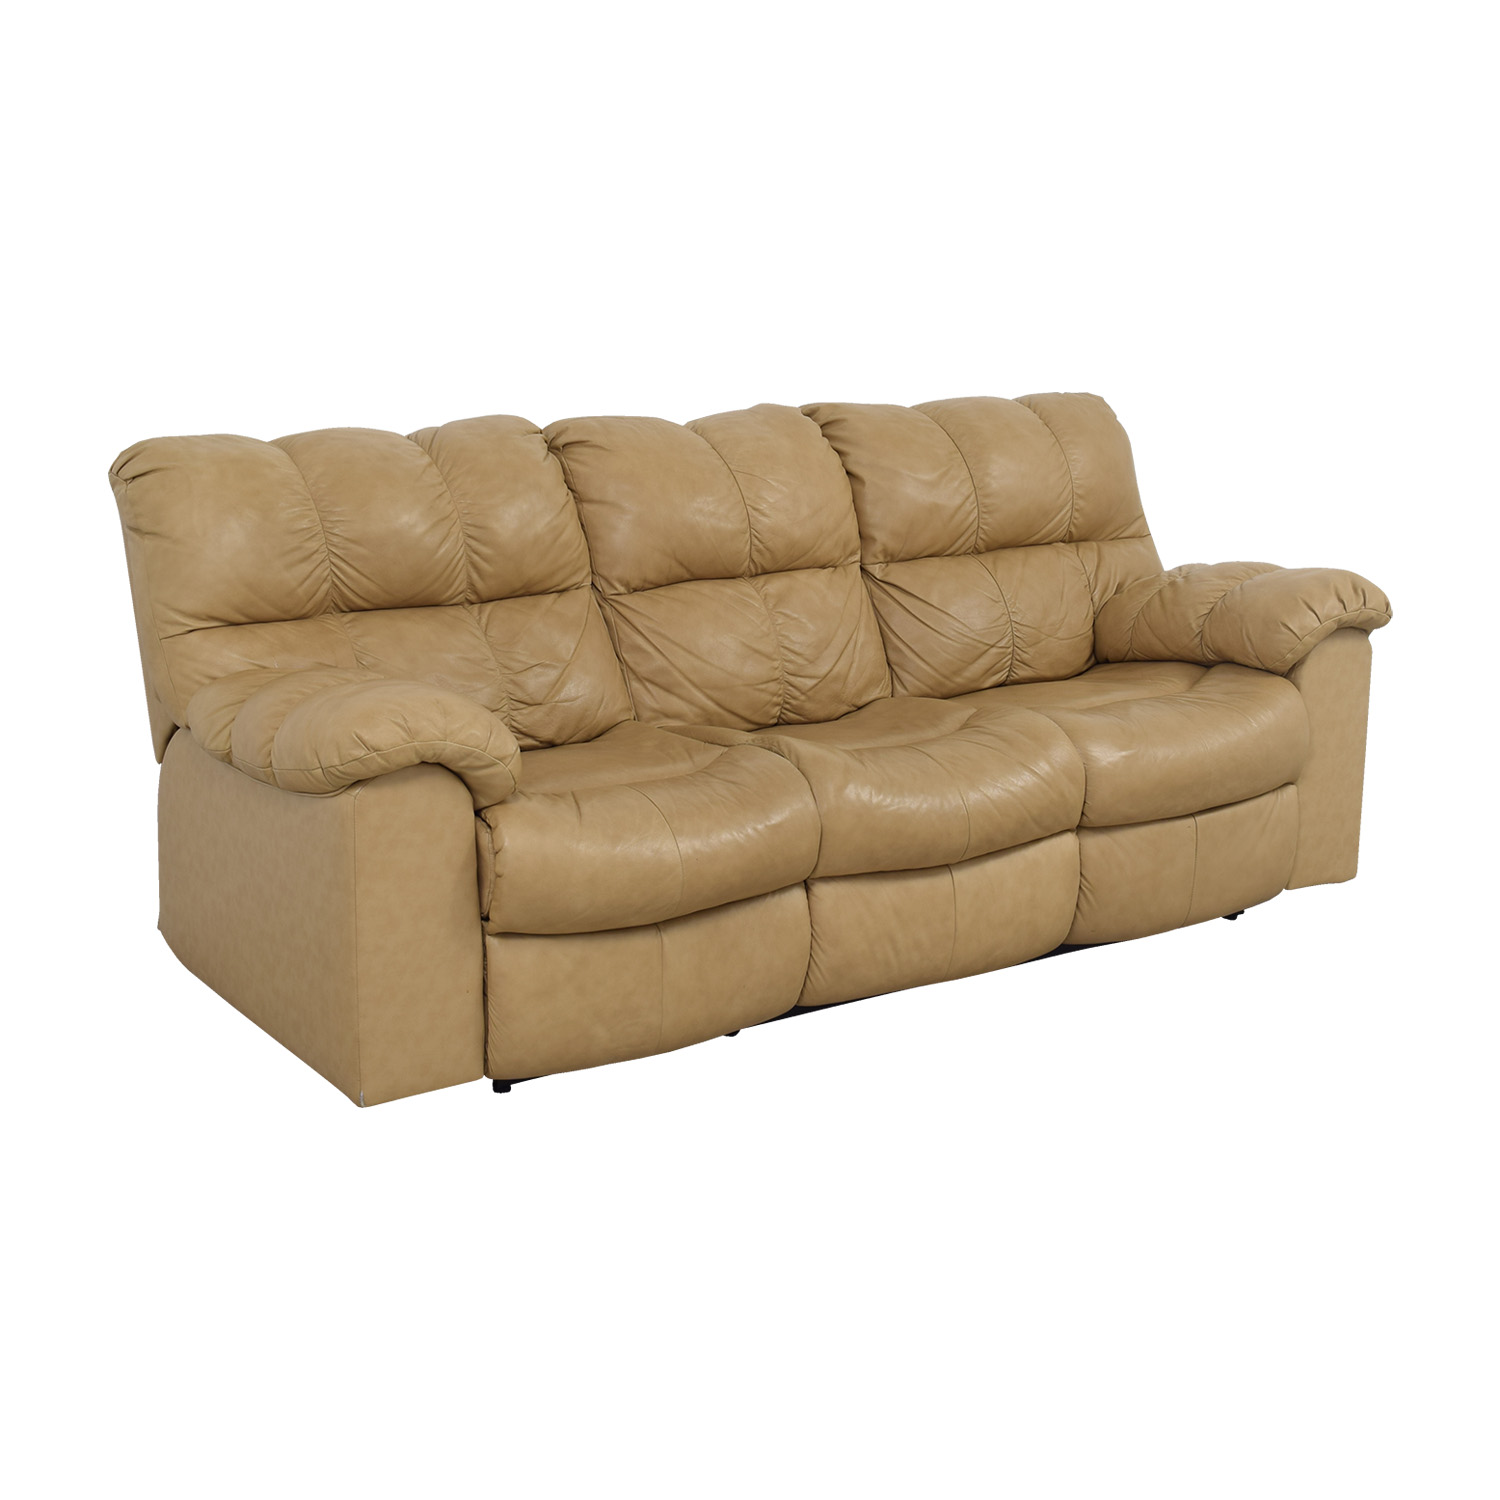 Ashley Signature Design Sofa 84% Off - Ashley Signature Design Ashley Signature Design